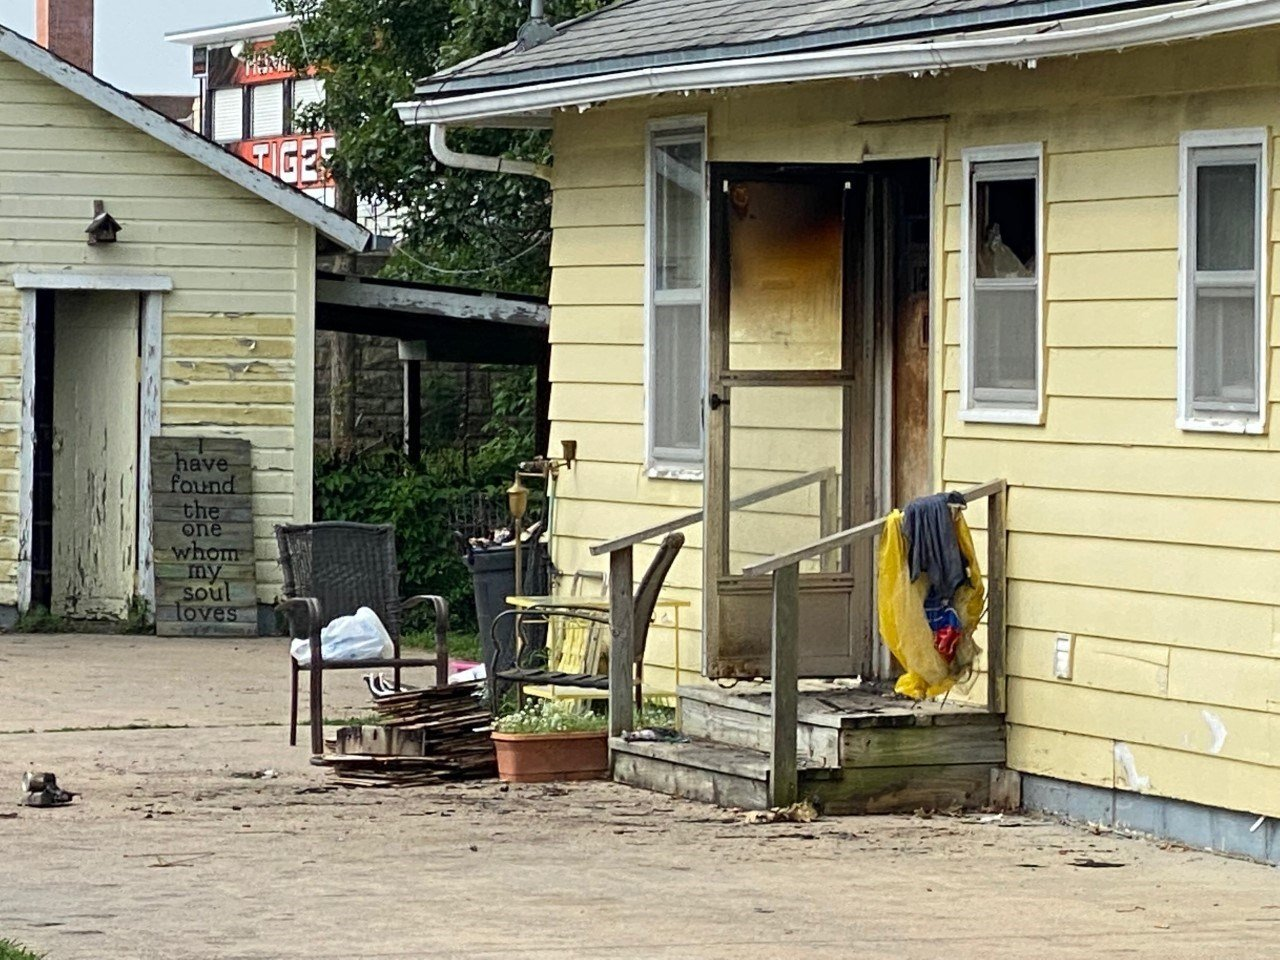 Significant damage in Falls City house fire